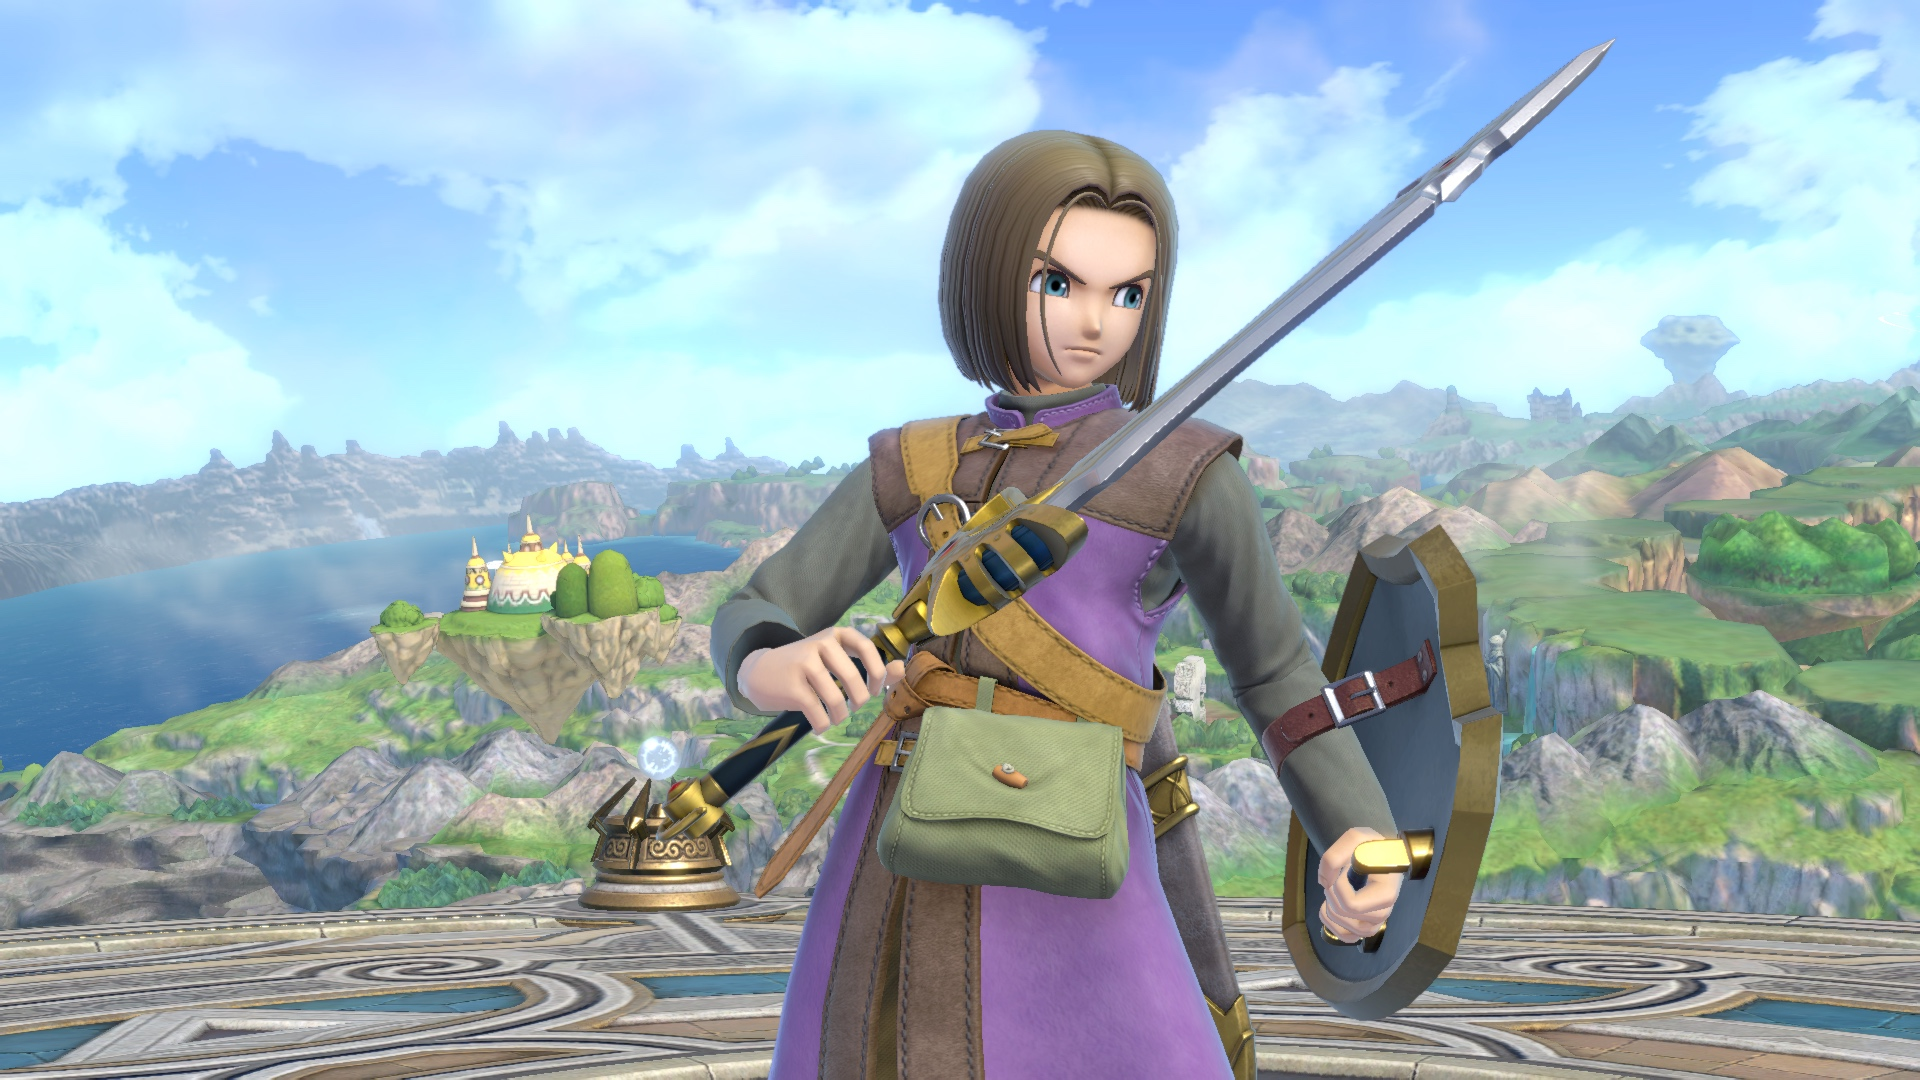 The Hero of Dragon Quest 11 stands with his sword and shield raised in a screenshot from Super Smash Bros. Ultimate.